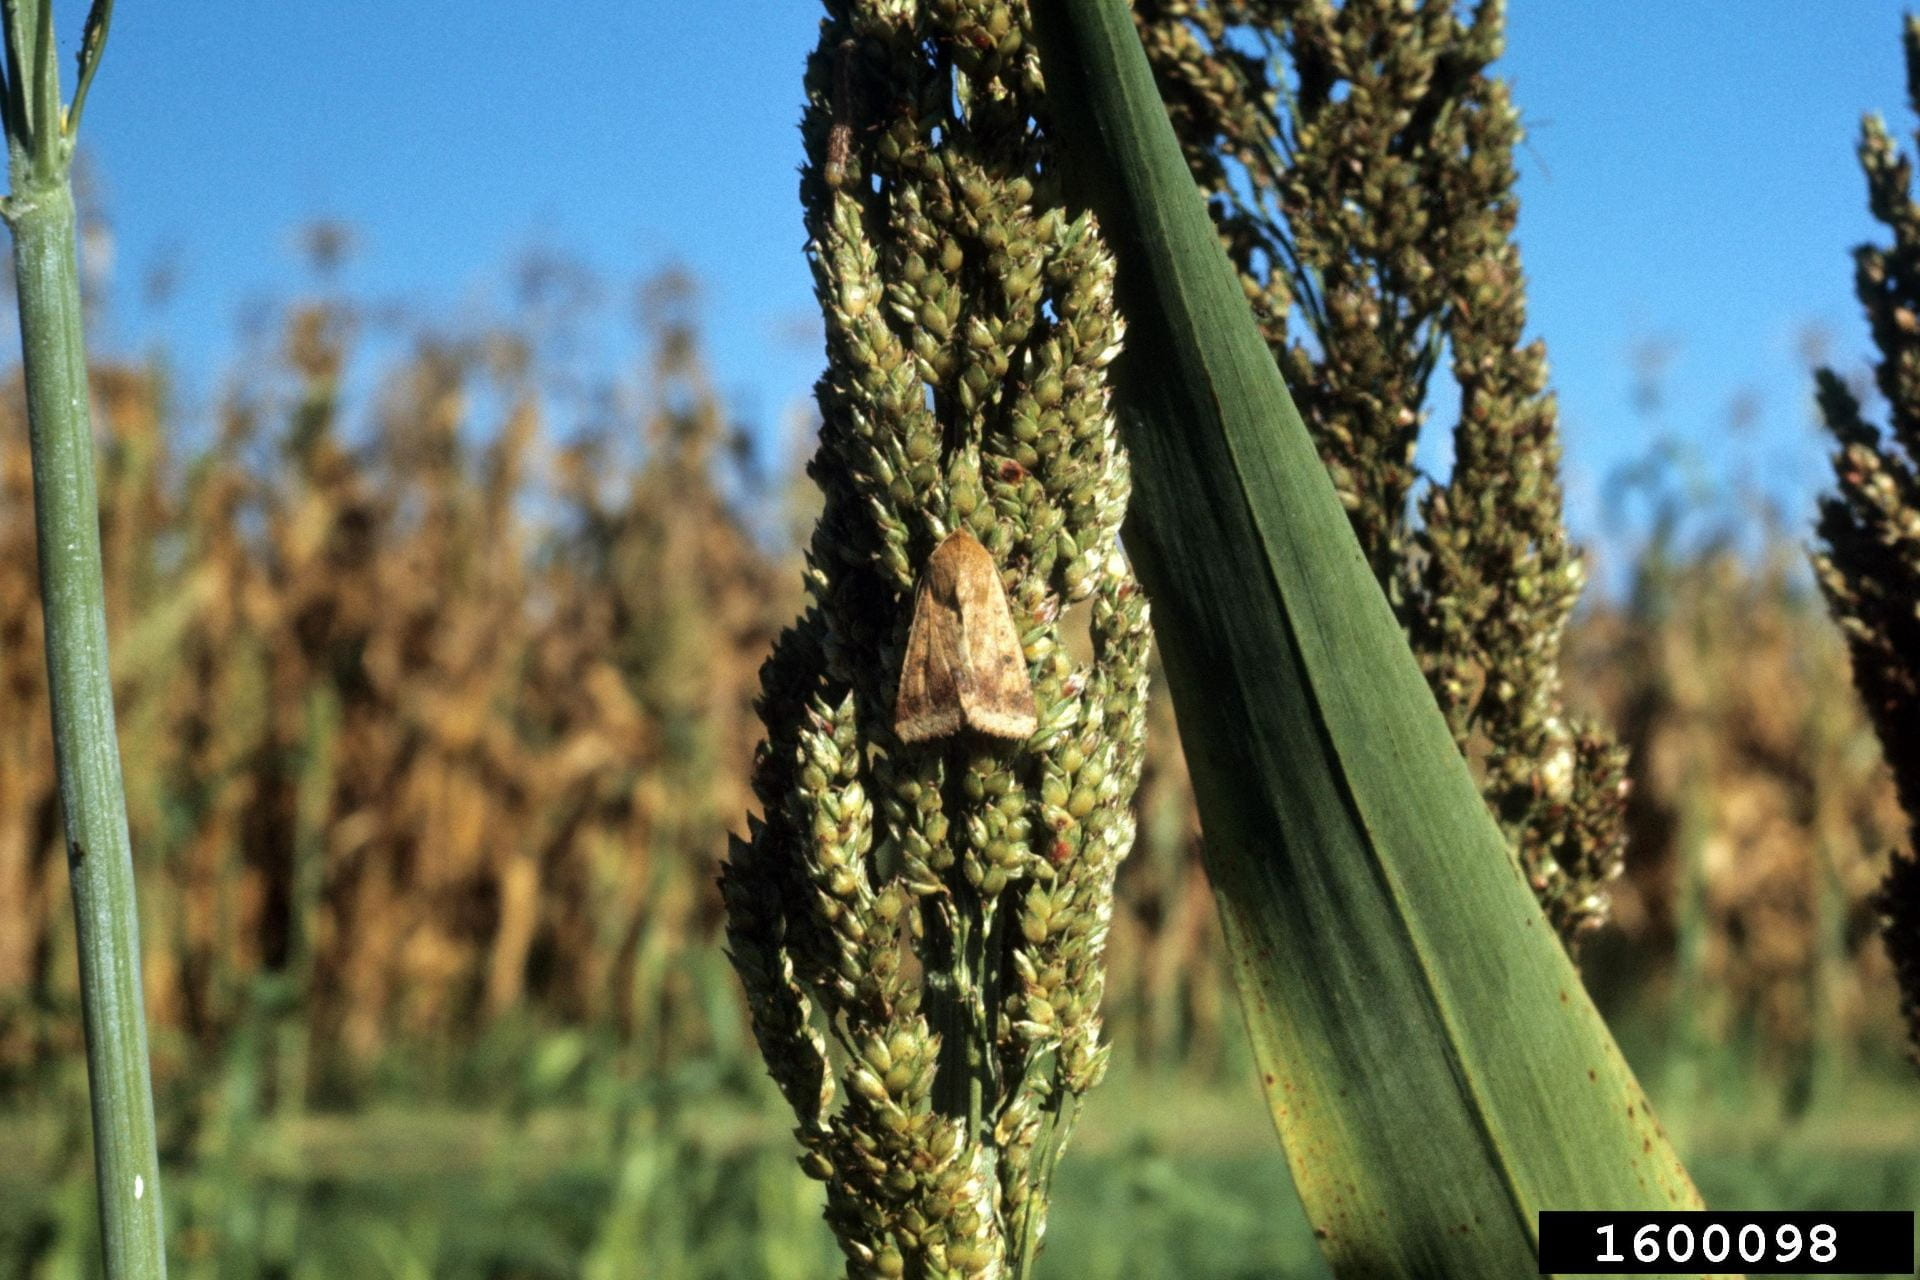 Corn earworm female in sorghum. Image: John C. French Sr